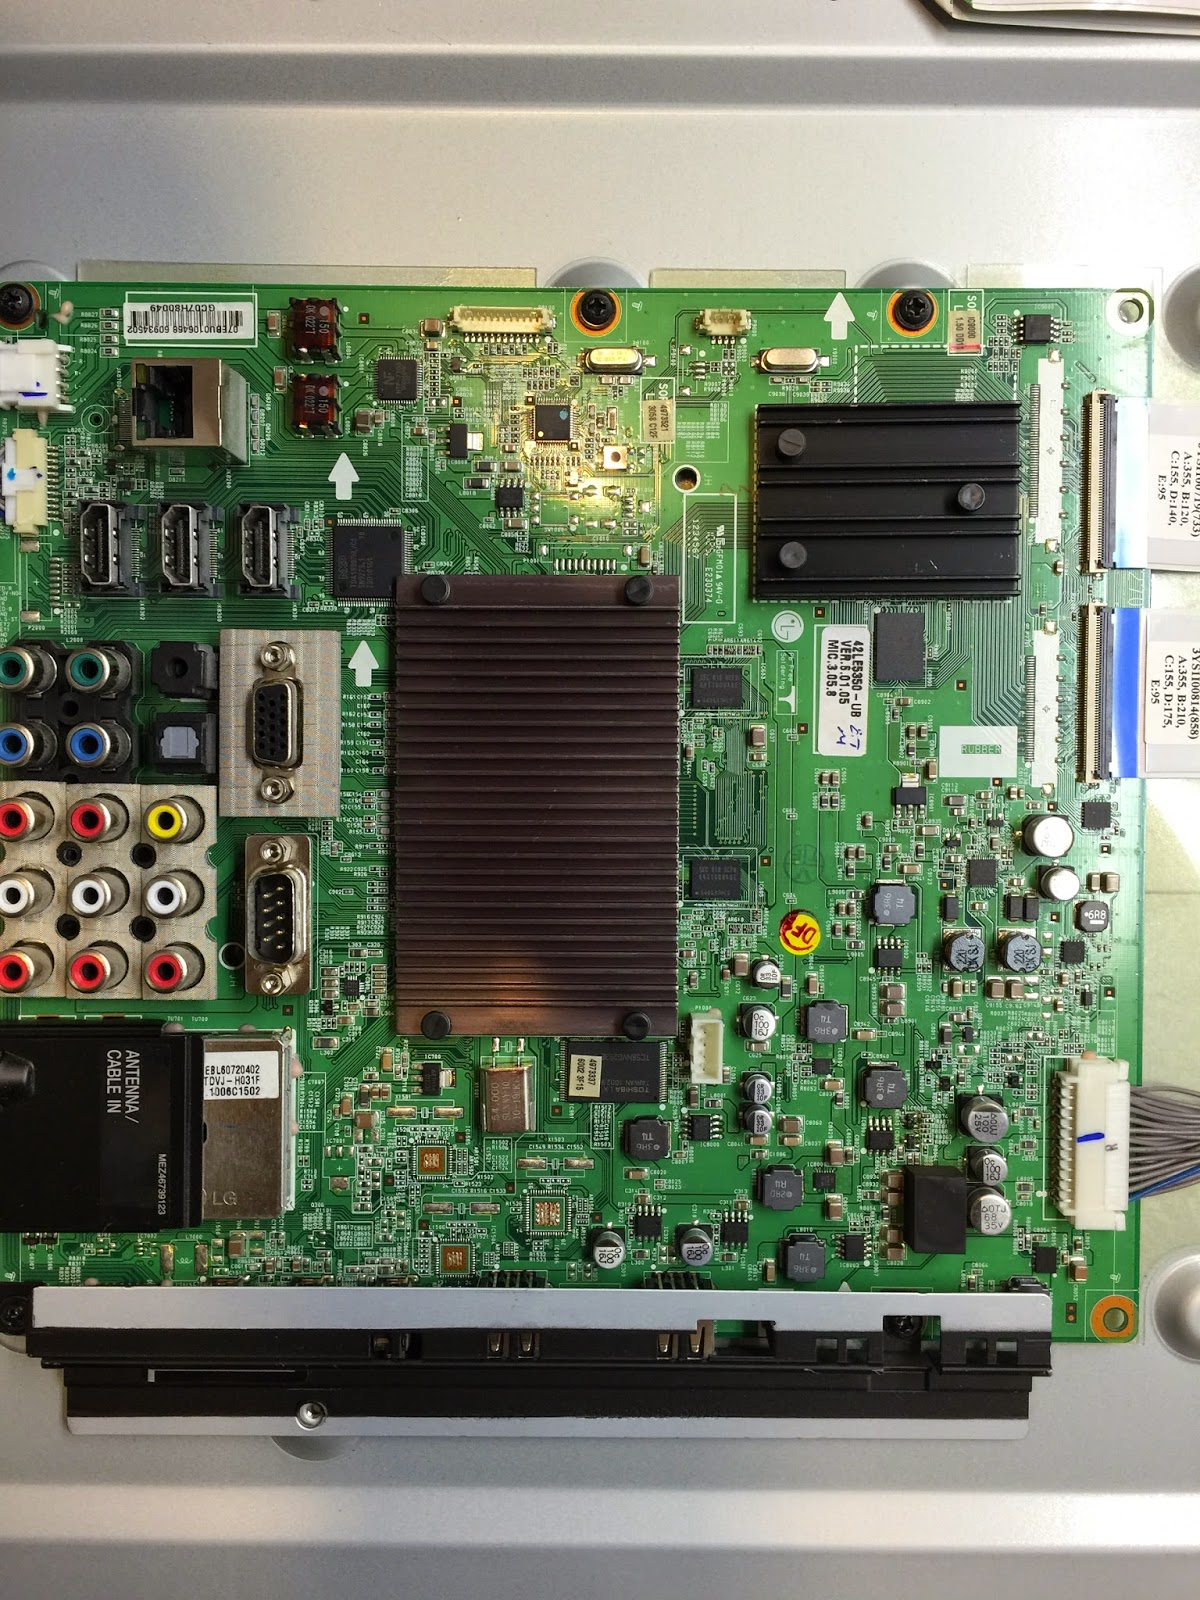 Ms System 350 Intercom Tech Tinkerer Iron For Computer Motherboards Circuit Board 11m Cable Ebay My New Theory Is That The Ethernet Controller Built Into Main Processor And It Partially Dead Gui Comes Up On Screen So Chip